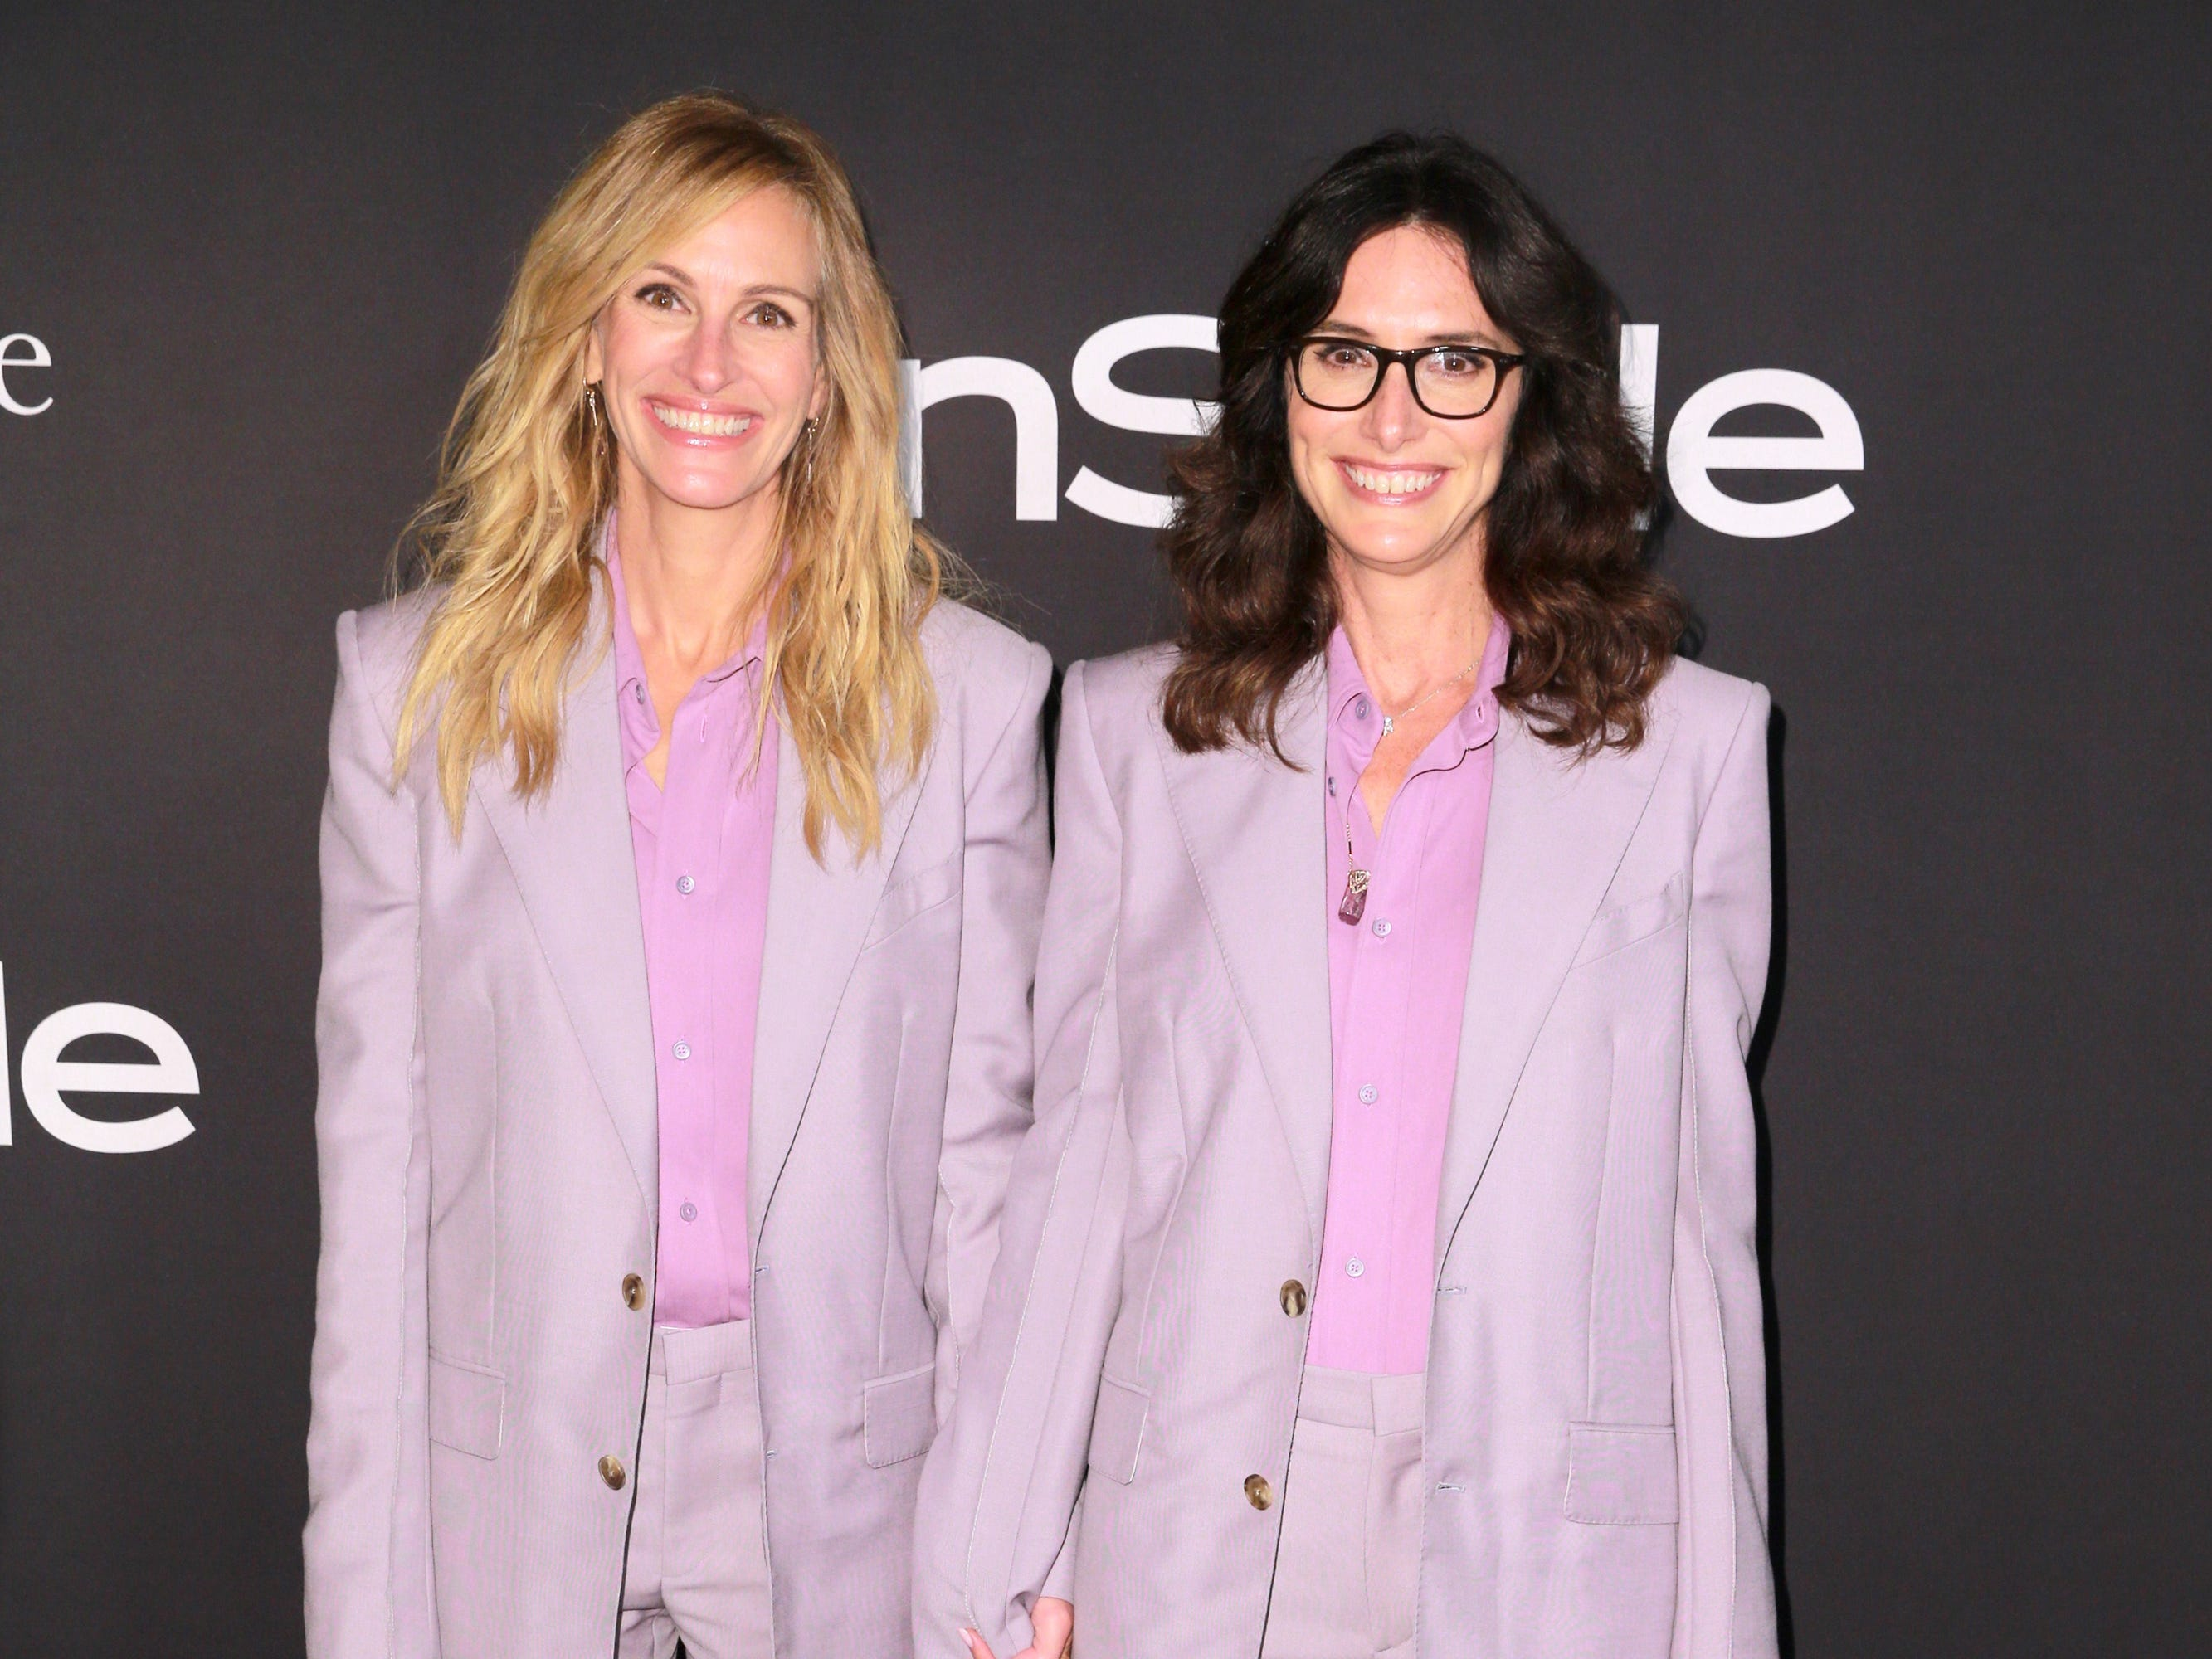 LOS ANGELES, CA - OCTOBER 22:  Julia Roberts and Elizabeth Stewart attend the 2018 InStyle Awards at The Getty Center on October 22, 2018 in Los Angeles, California.  (Photo by Rich Fury/Getty Images) ORG XMIT: 775236597 ORIG FILE ID: 1052778874